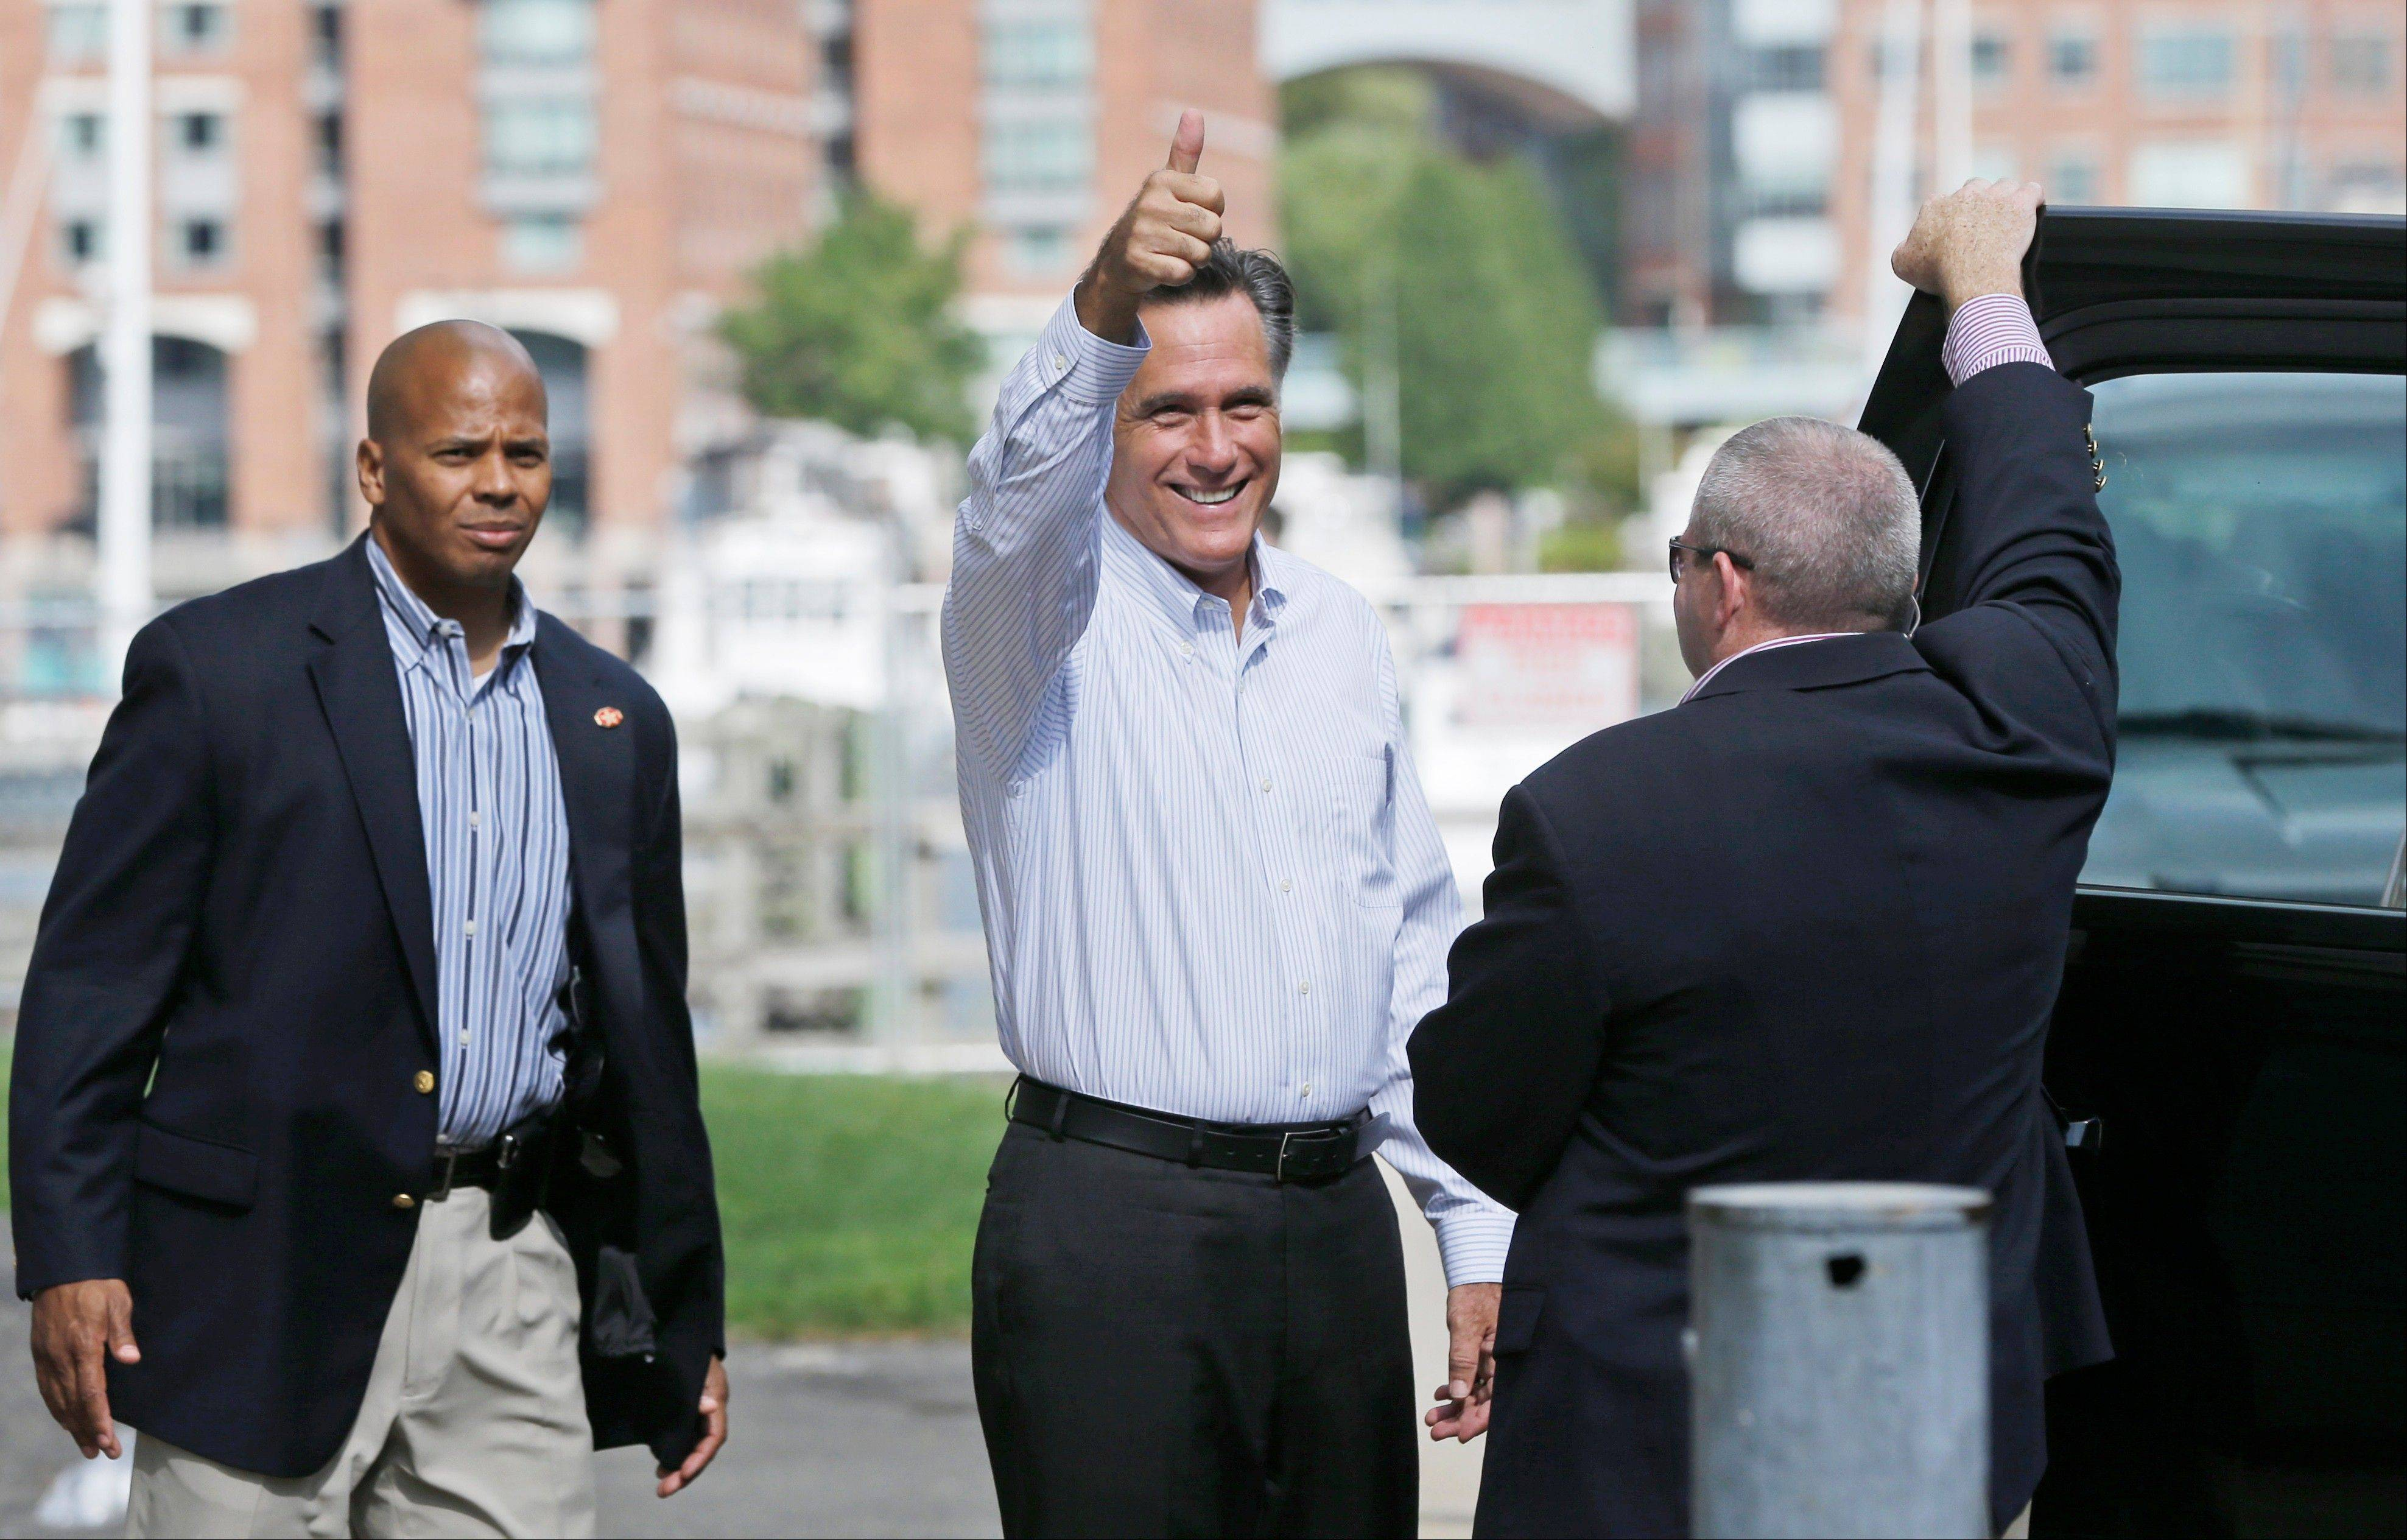 Republican presidential candidate Mitt Romney gives a thumbs-up as he leaves his campaign office in Boston on Saturday, Sept. 8.